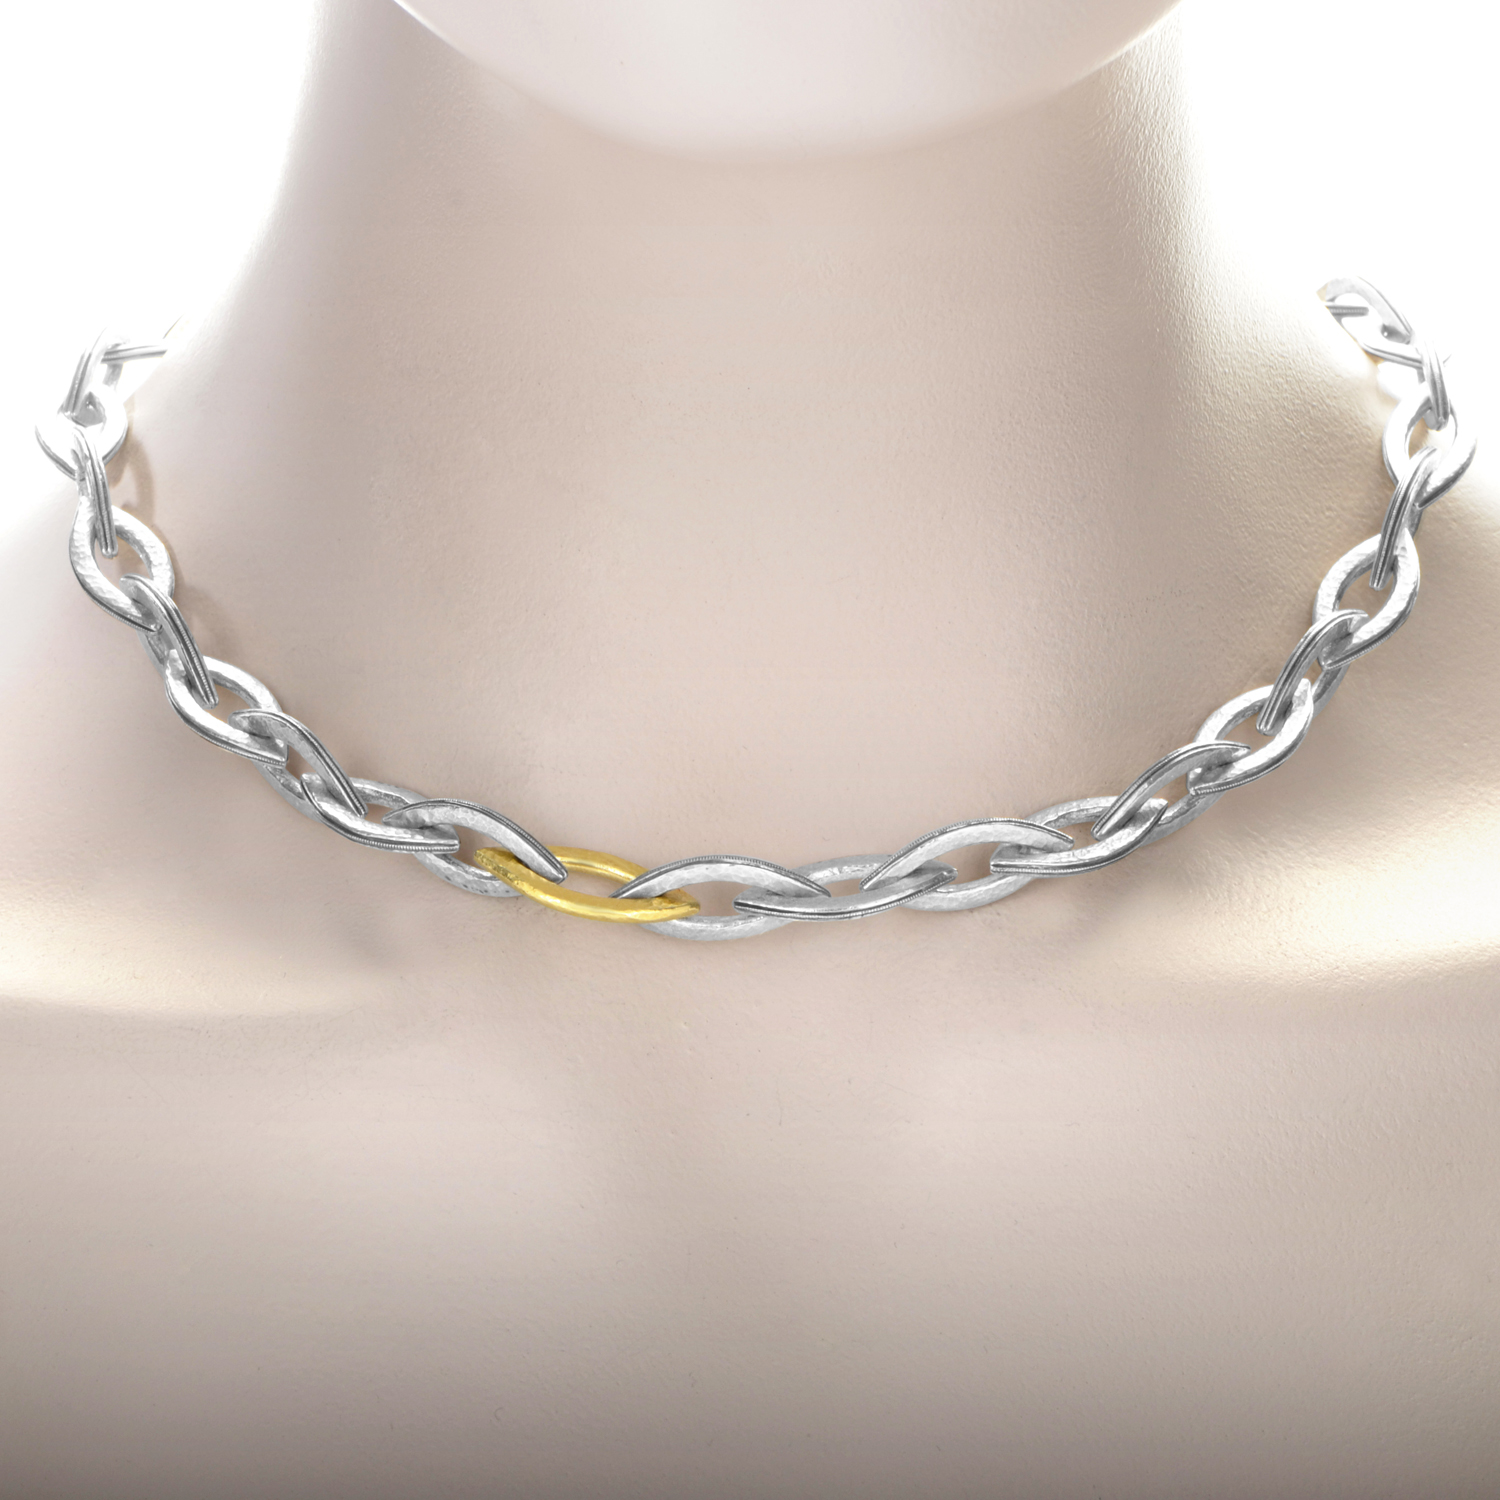 Willow Women's 24K Yellow Gold Silver Link Collar Necklace